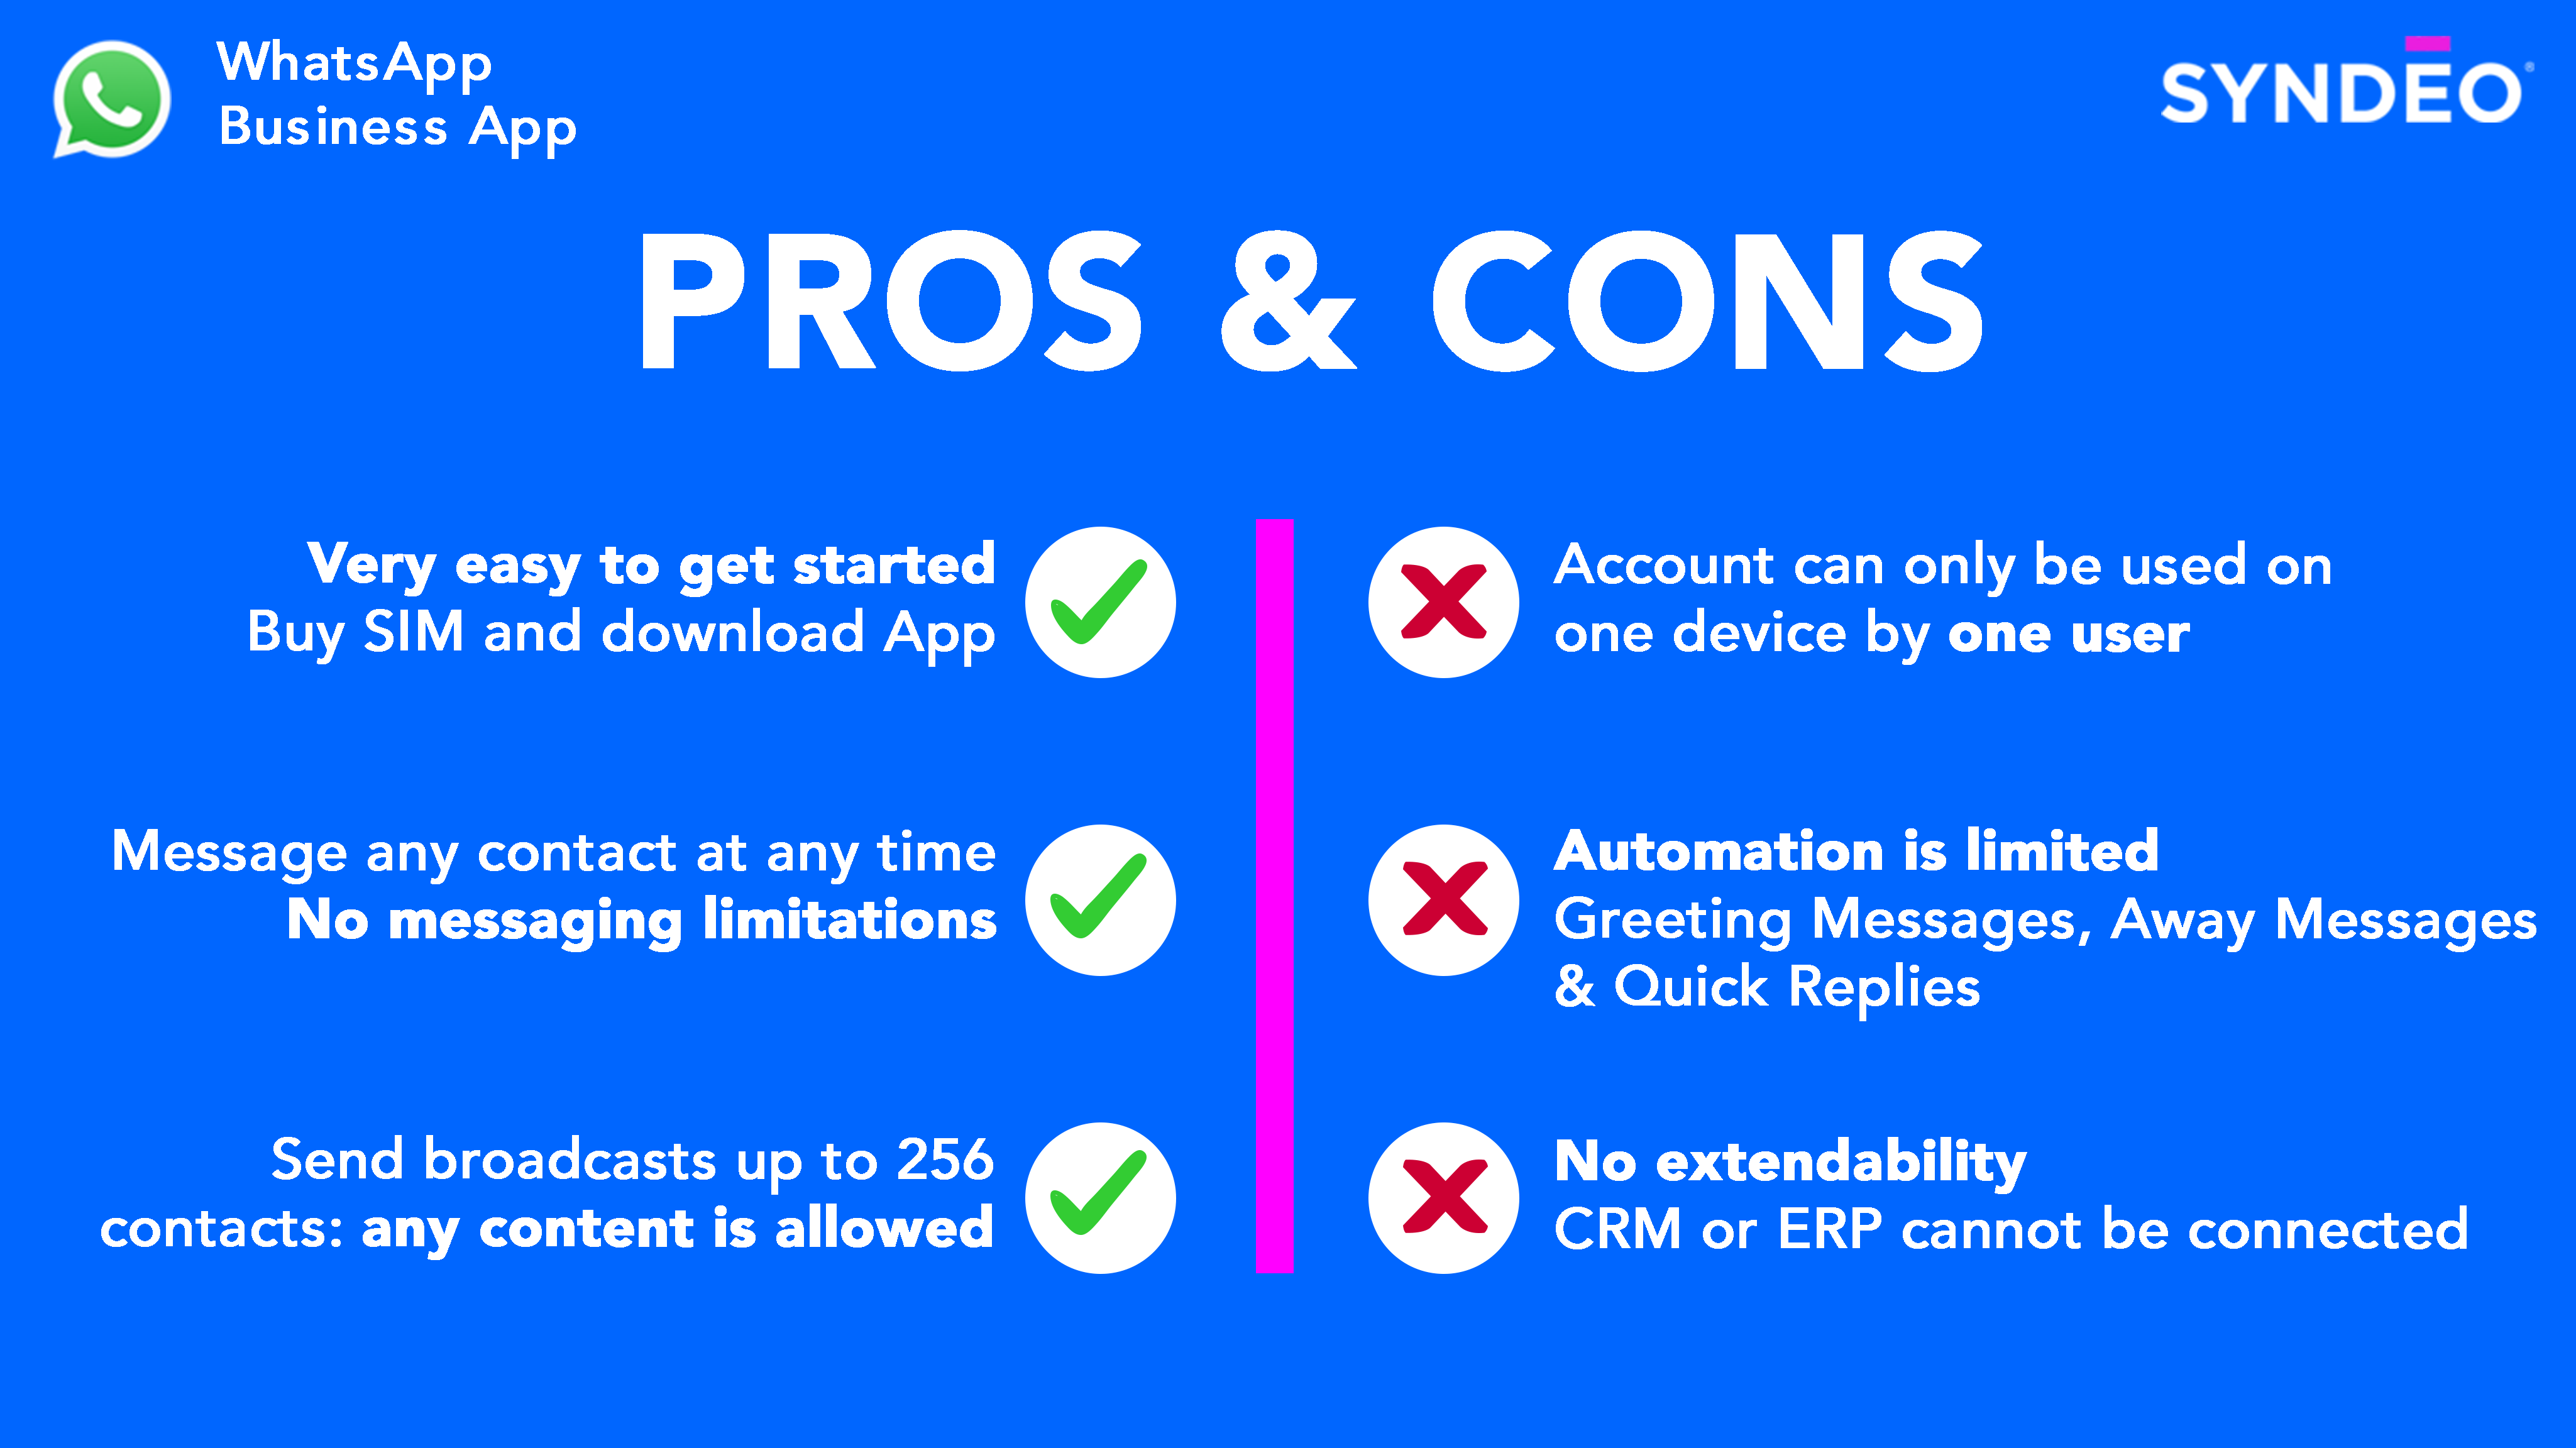 WhatsApp Pros and Cons #1 (1)